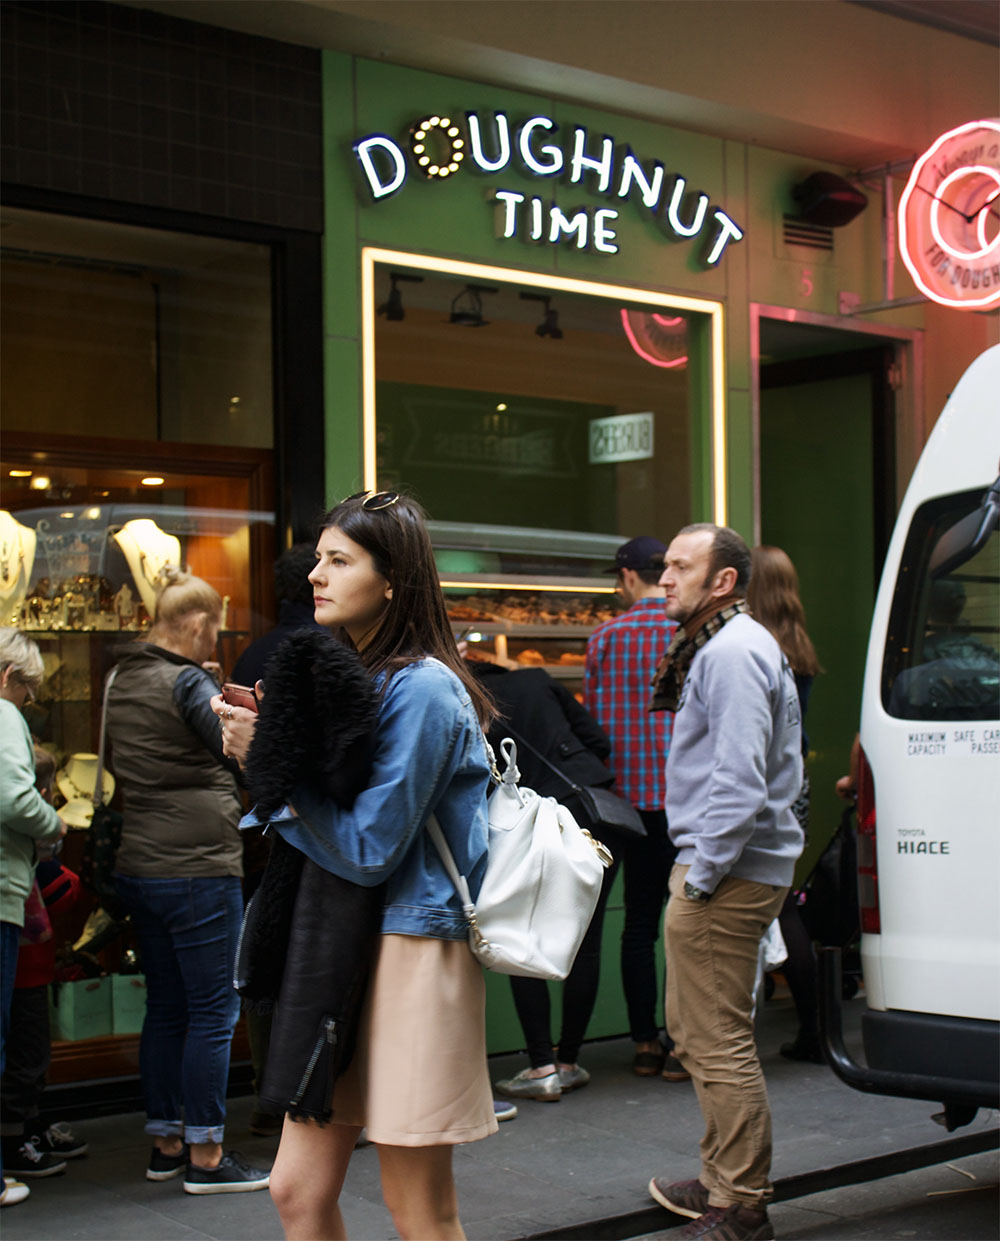 Melbourne city guide, what to do in melbourne, where to eat in melbourne, vegan food melbourne, vegans of melbourne, boohoo, stylefix boohoo, chanel slingbacks, slingback pumps, distressed denim jackets, melbourne street style, doughnut time melbourne, smith and daughters, something more fitzroy, chanel melbourne, see australia, visit melbourne, a weekend in melbourne, melbourne itinerary, food trucks melbourne, welcome to thornbury, food truck park melbourne, moonlight cinema melbourne, travel website, travel guide, city guides, where to go in australia, melbourne or sydney, see australia, we who wander, wewhowander.co, ivana petrovic, the forum theatre, travel bloggers, fashion bloggers, smith & deli